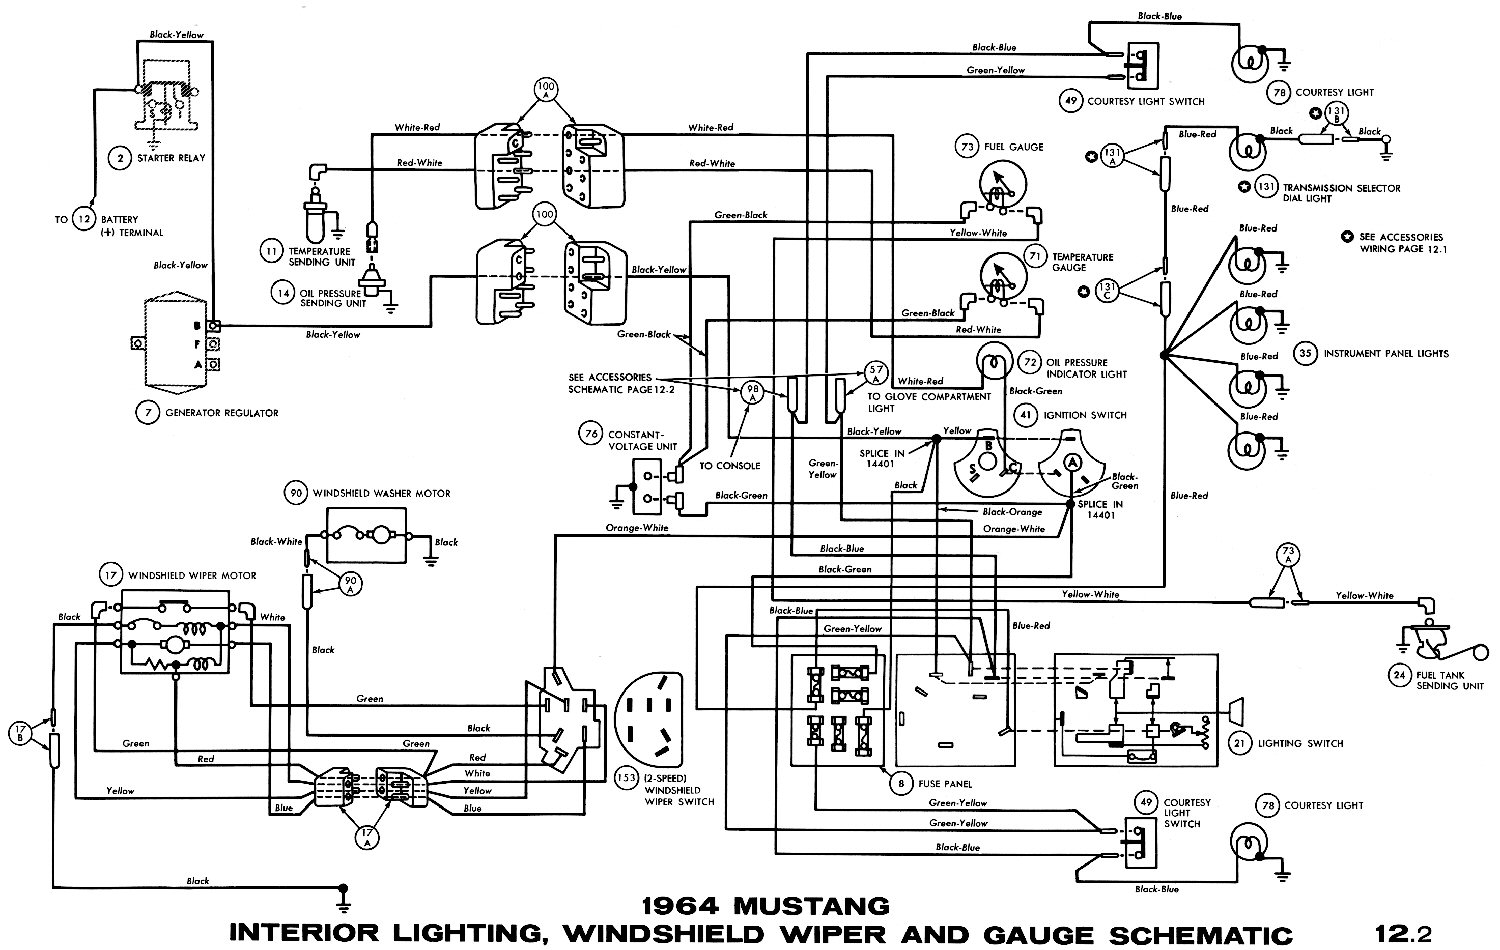 65 mustang engine wiring diagram with 1964 Mustang Wiring Diagrams on 631764 Vacuum Lines Diagrams I further Dune Buggy Turn Signal Wiring Diagram also Chrysler 300 Engine Wiring Diagram likewise Parking Emergency Brake 63 Sprint Convertible likewise 1970 Fairlane 500 Steering Column Diagram.